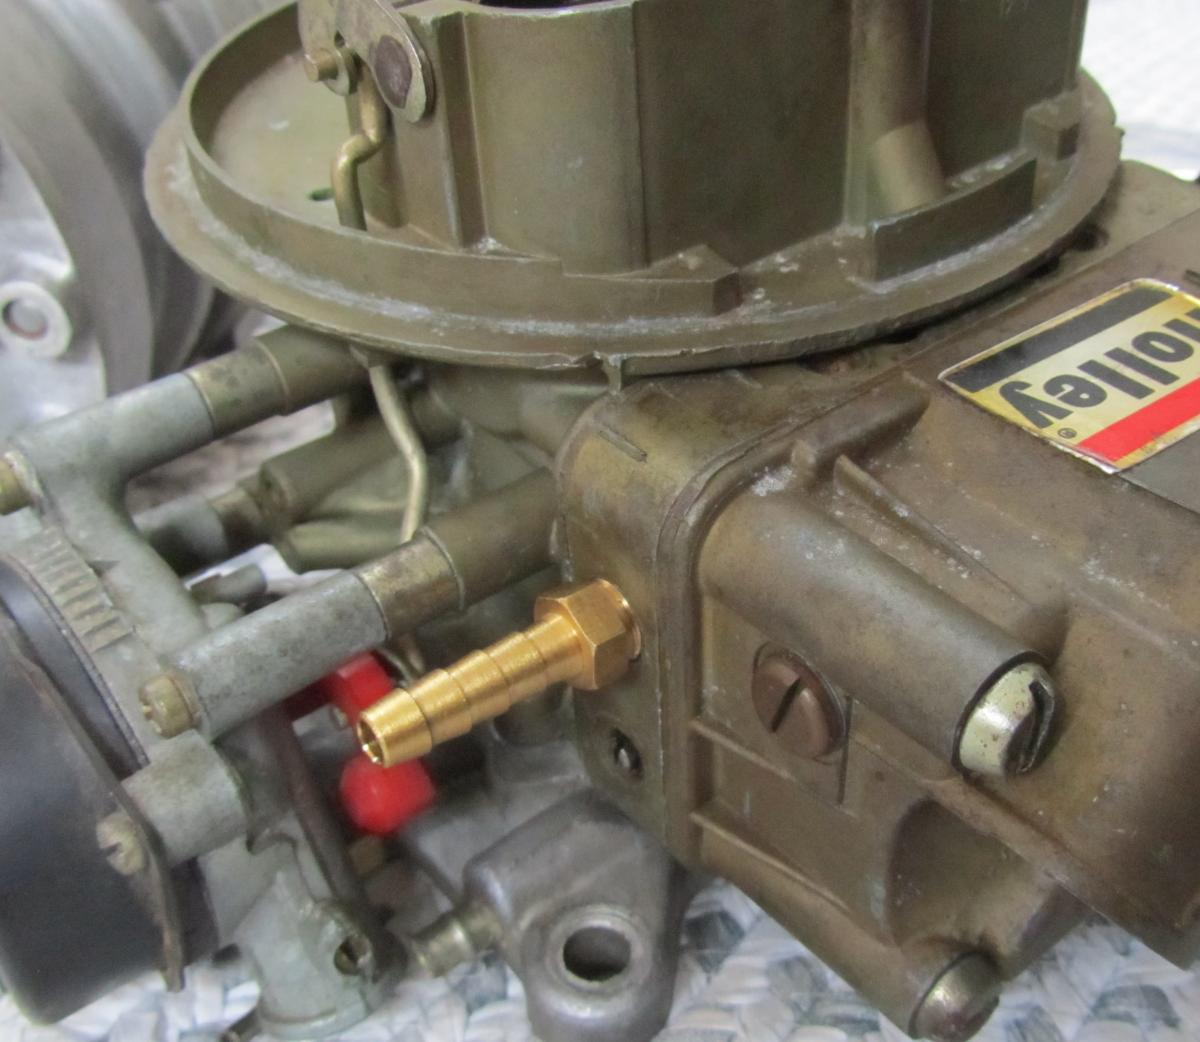 Fuel How To Boost Reference a Holley Carb - Turbo Dodge